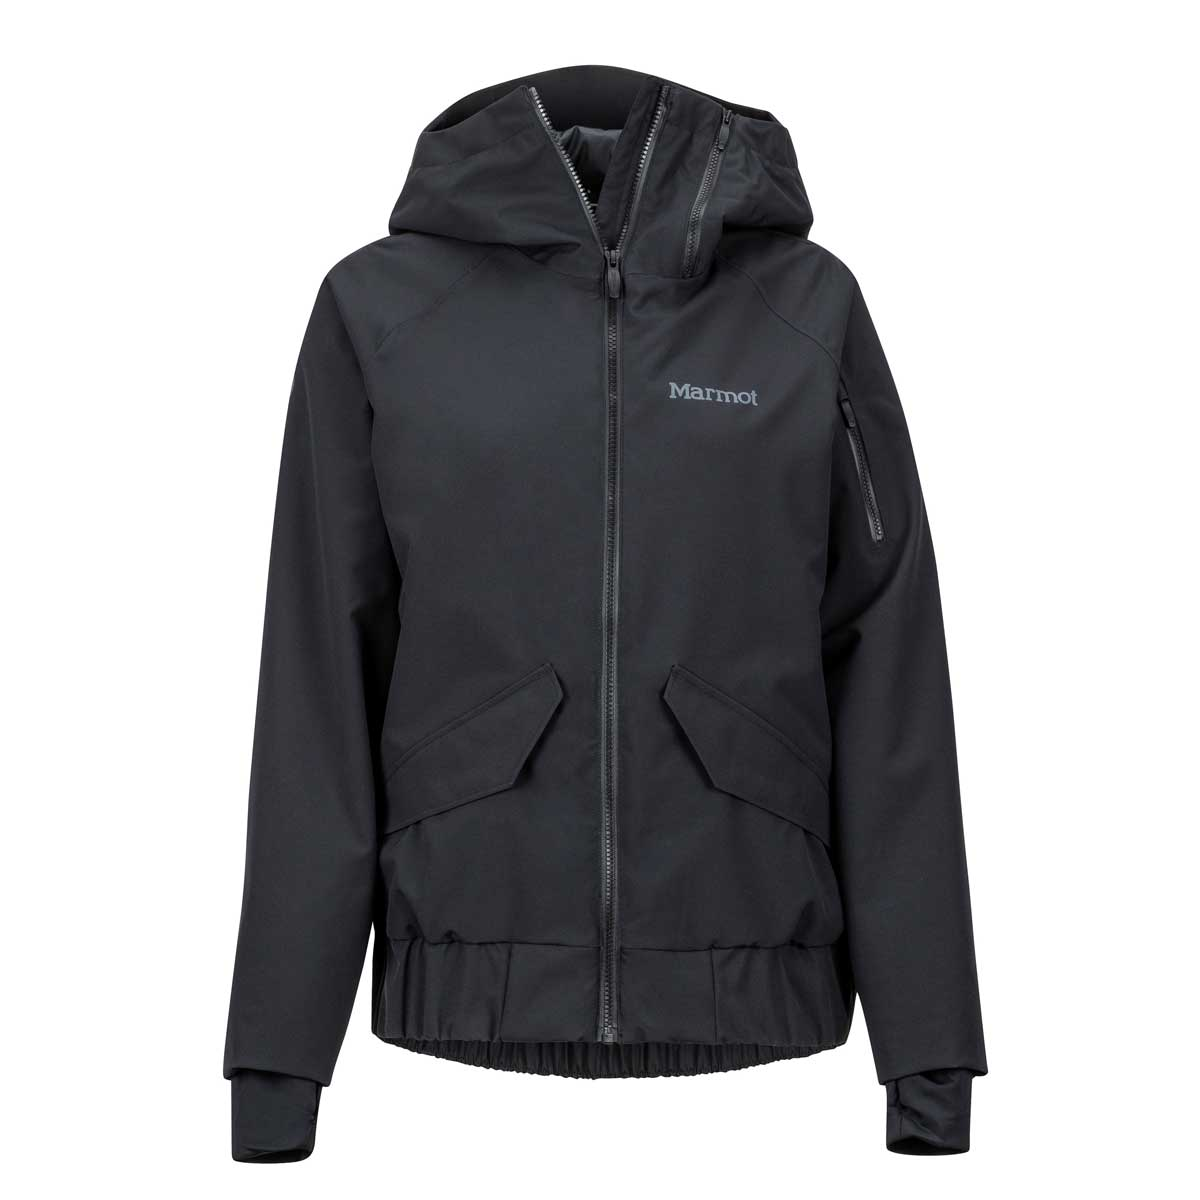 Marmot Women's Queenstown Jacket in Black